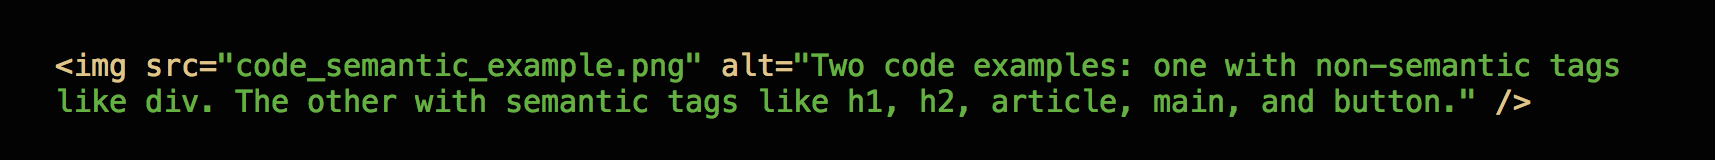 "an example of code using descriptive alt text for an image: ""Two code examples: one with non-semantic tags like div. The other with semantic tags like h1, h2, article, main, and button."""